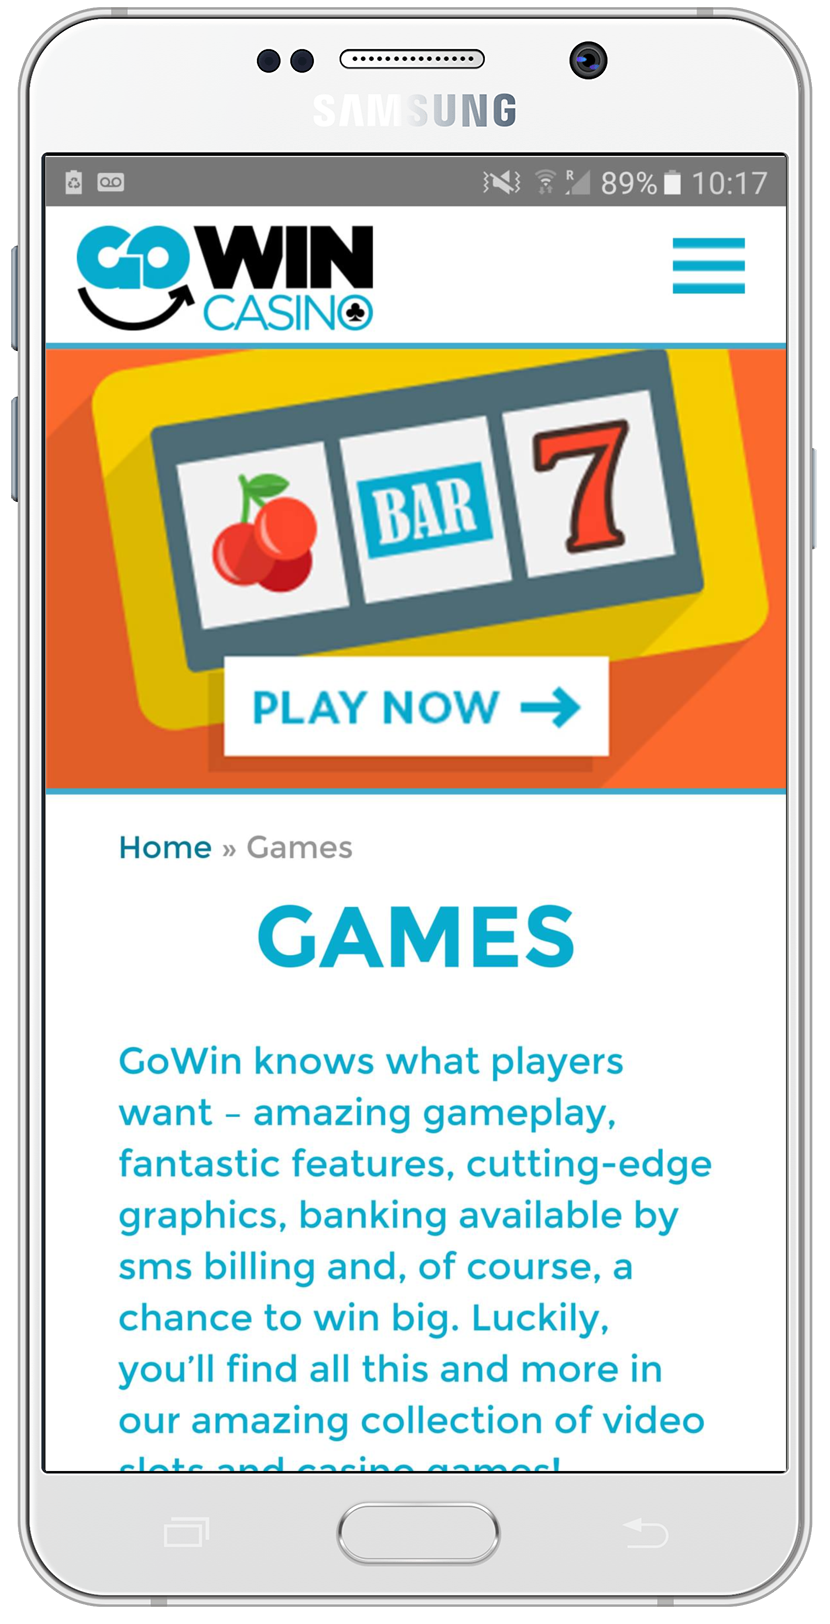 GoWin Games in Phone